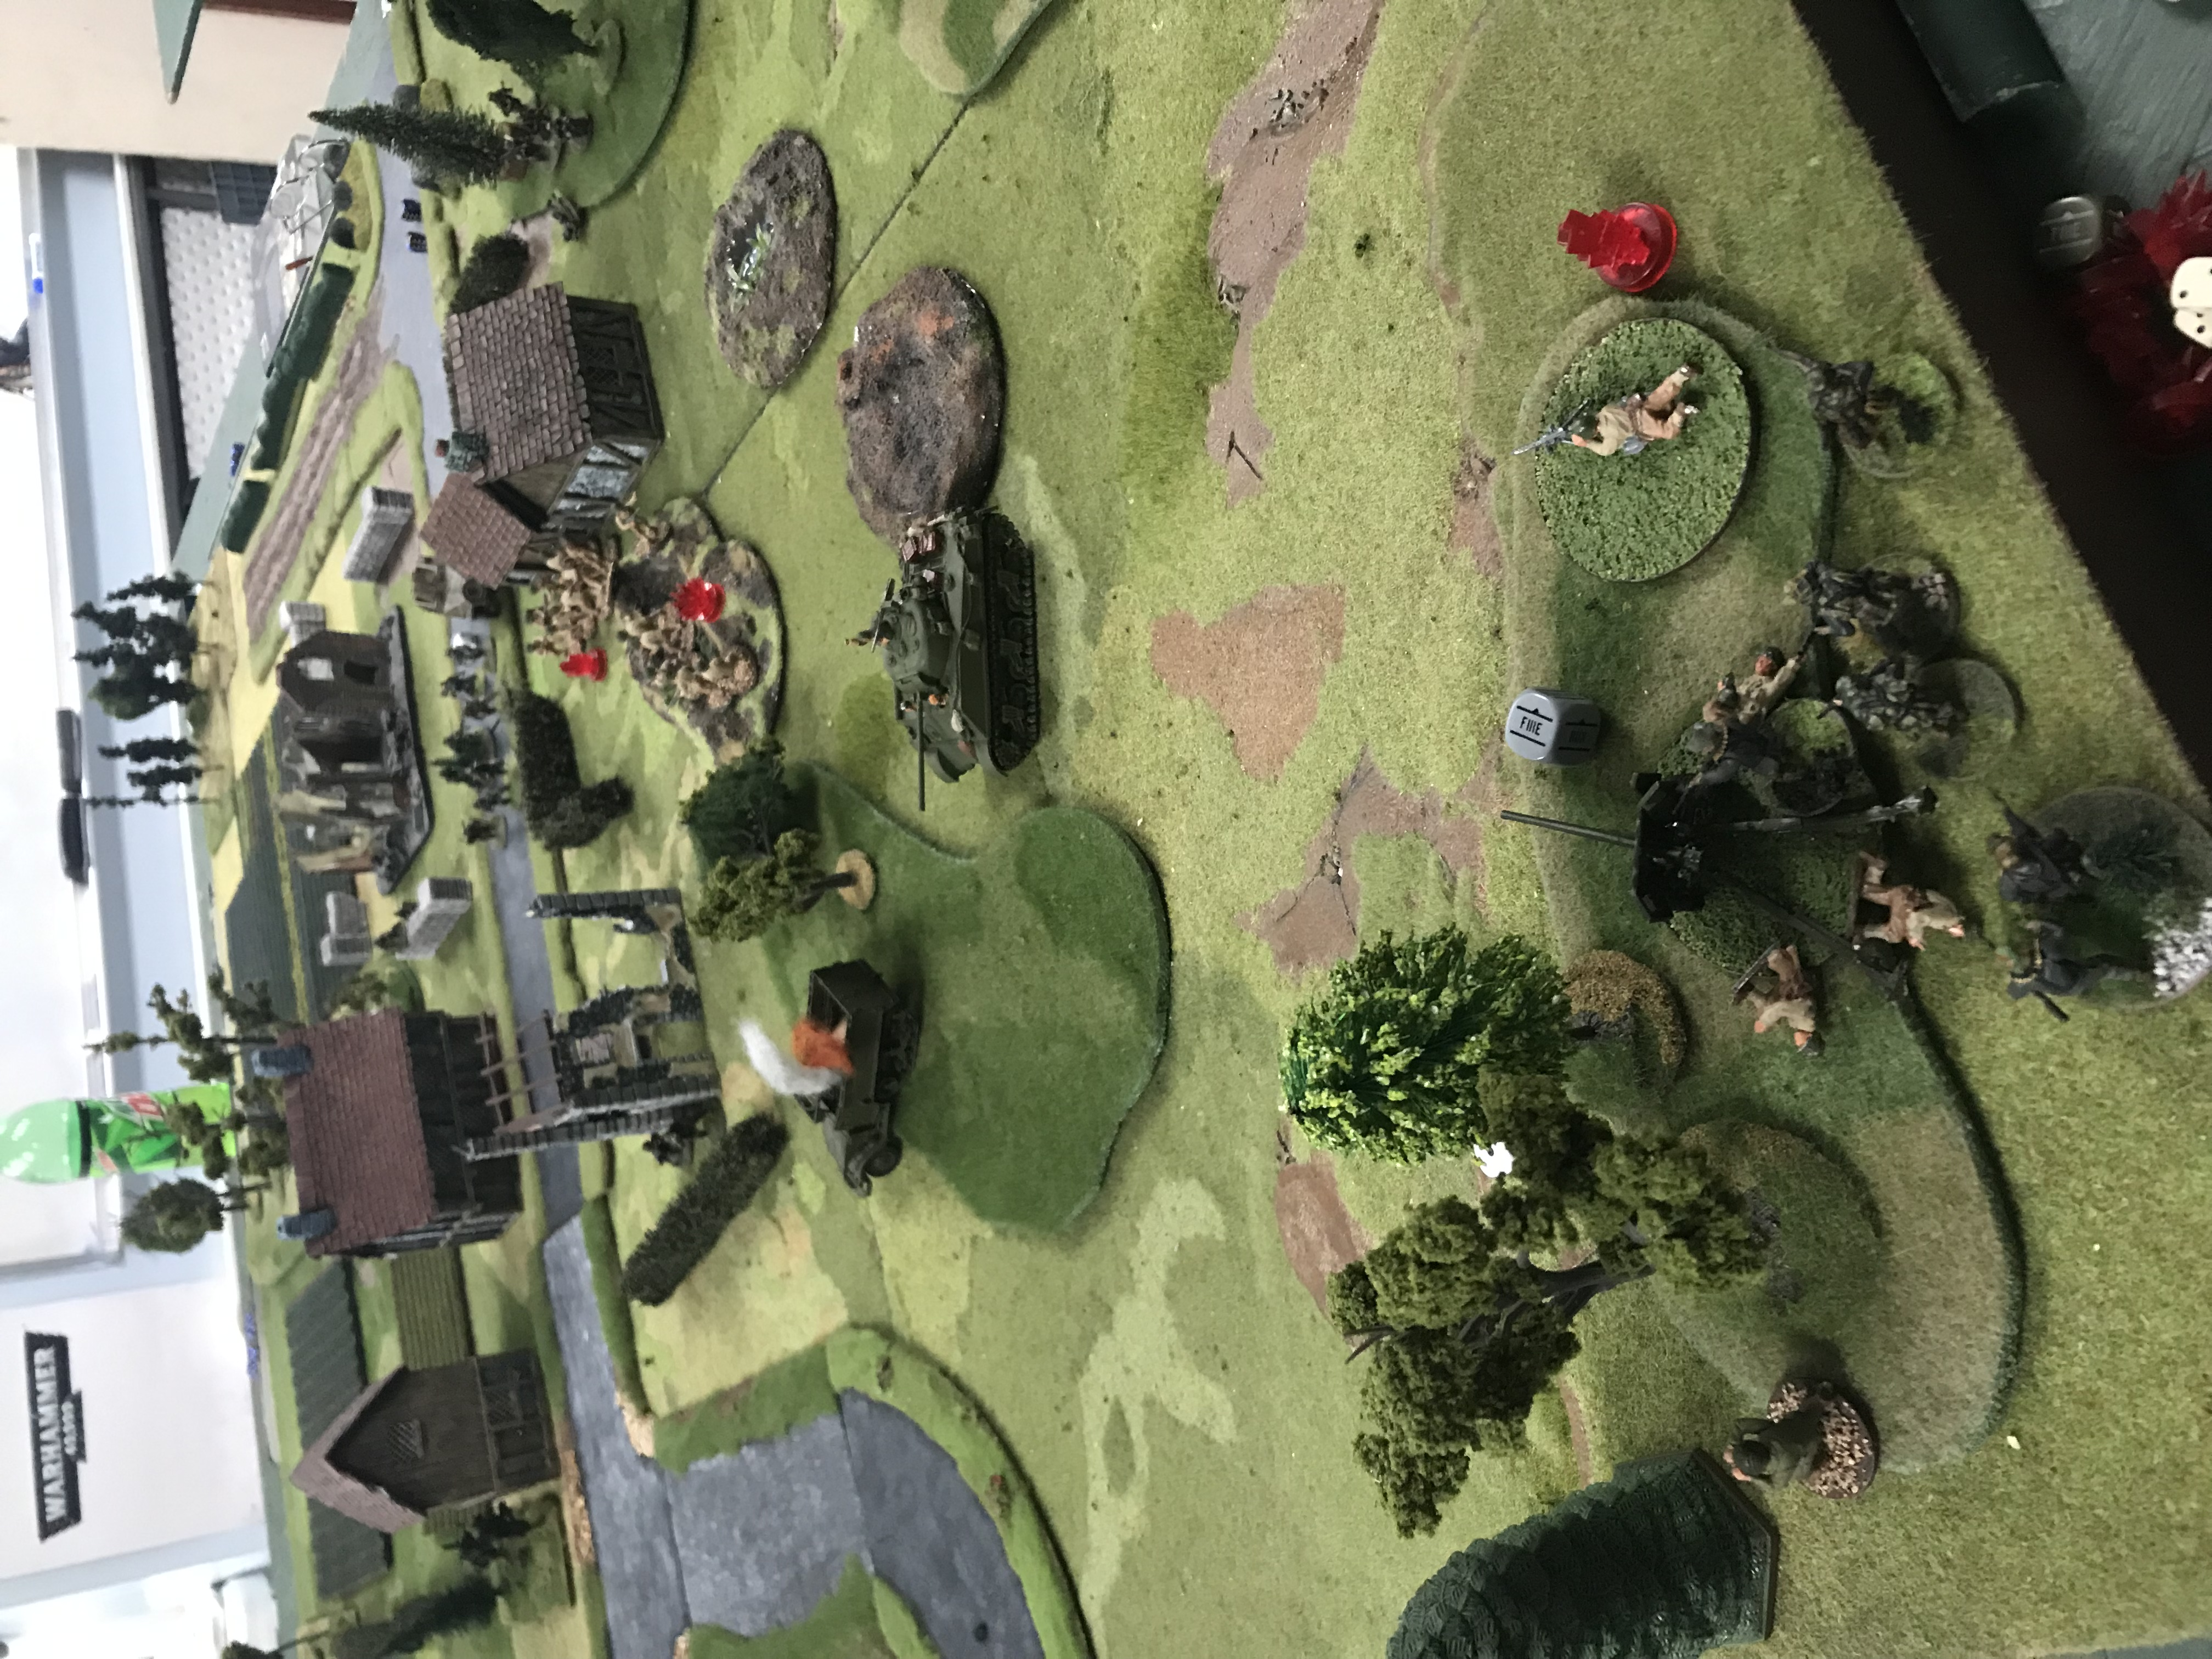 America's spearhead versus kampfgruppen smiledge in a fierce infantry engagement